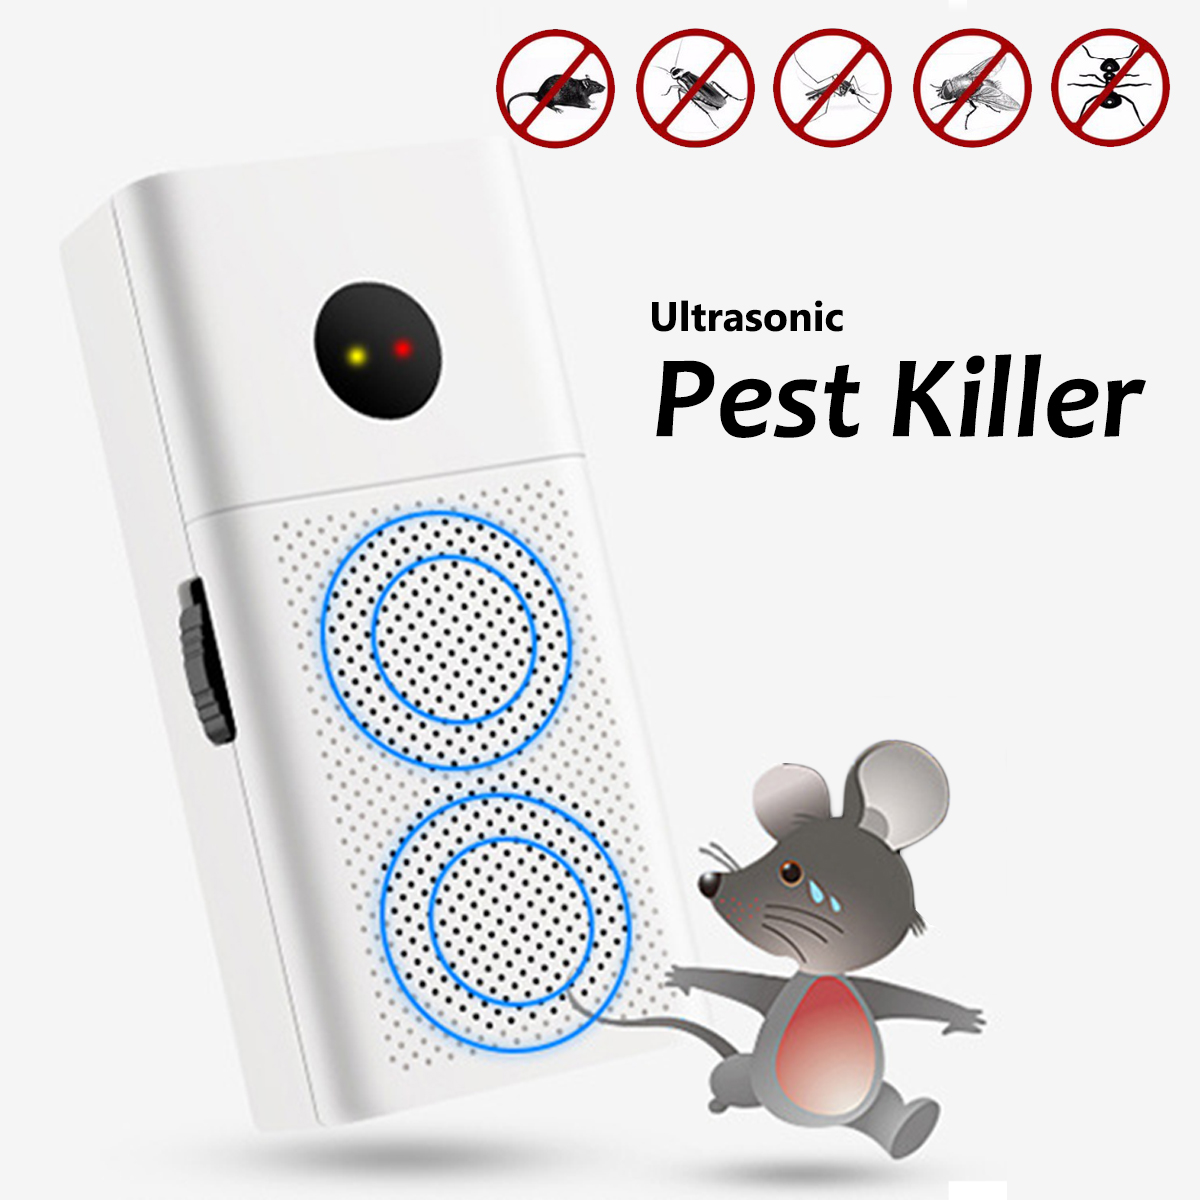 2018 US Plug ltrasonic Pest Repeller Electronic Pest Control Home Anti Fly Mosquito Repellent Killer Rodent Bug Rejector Mice